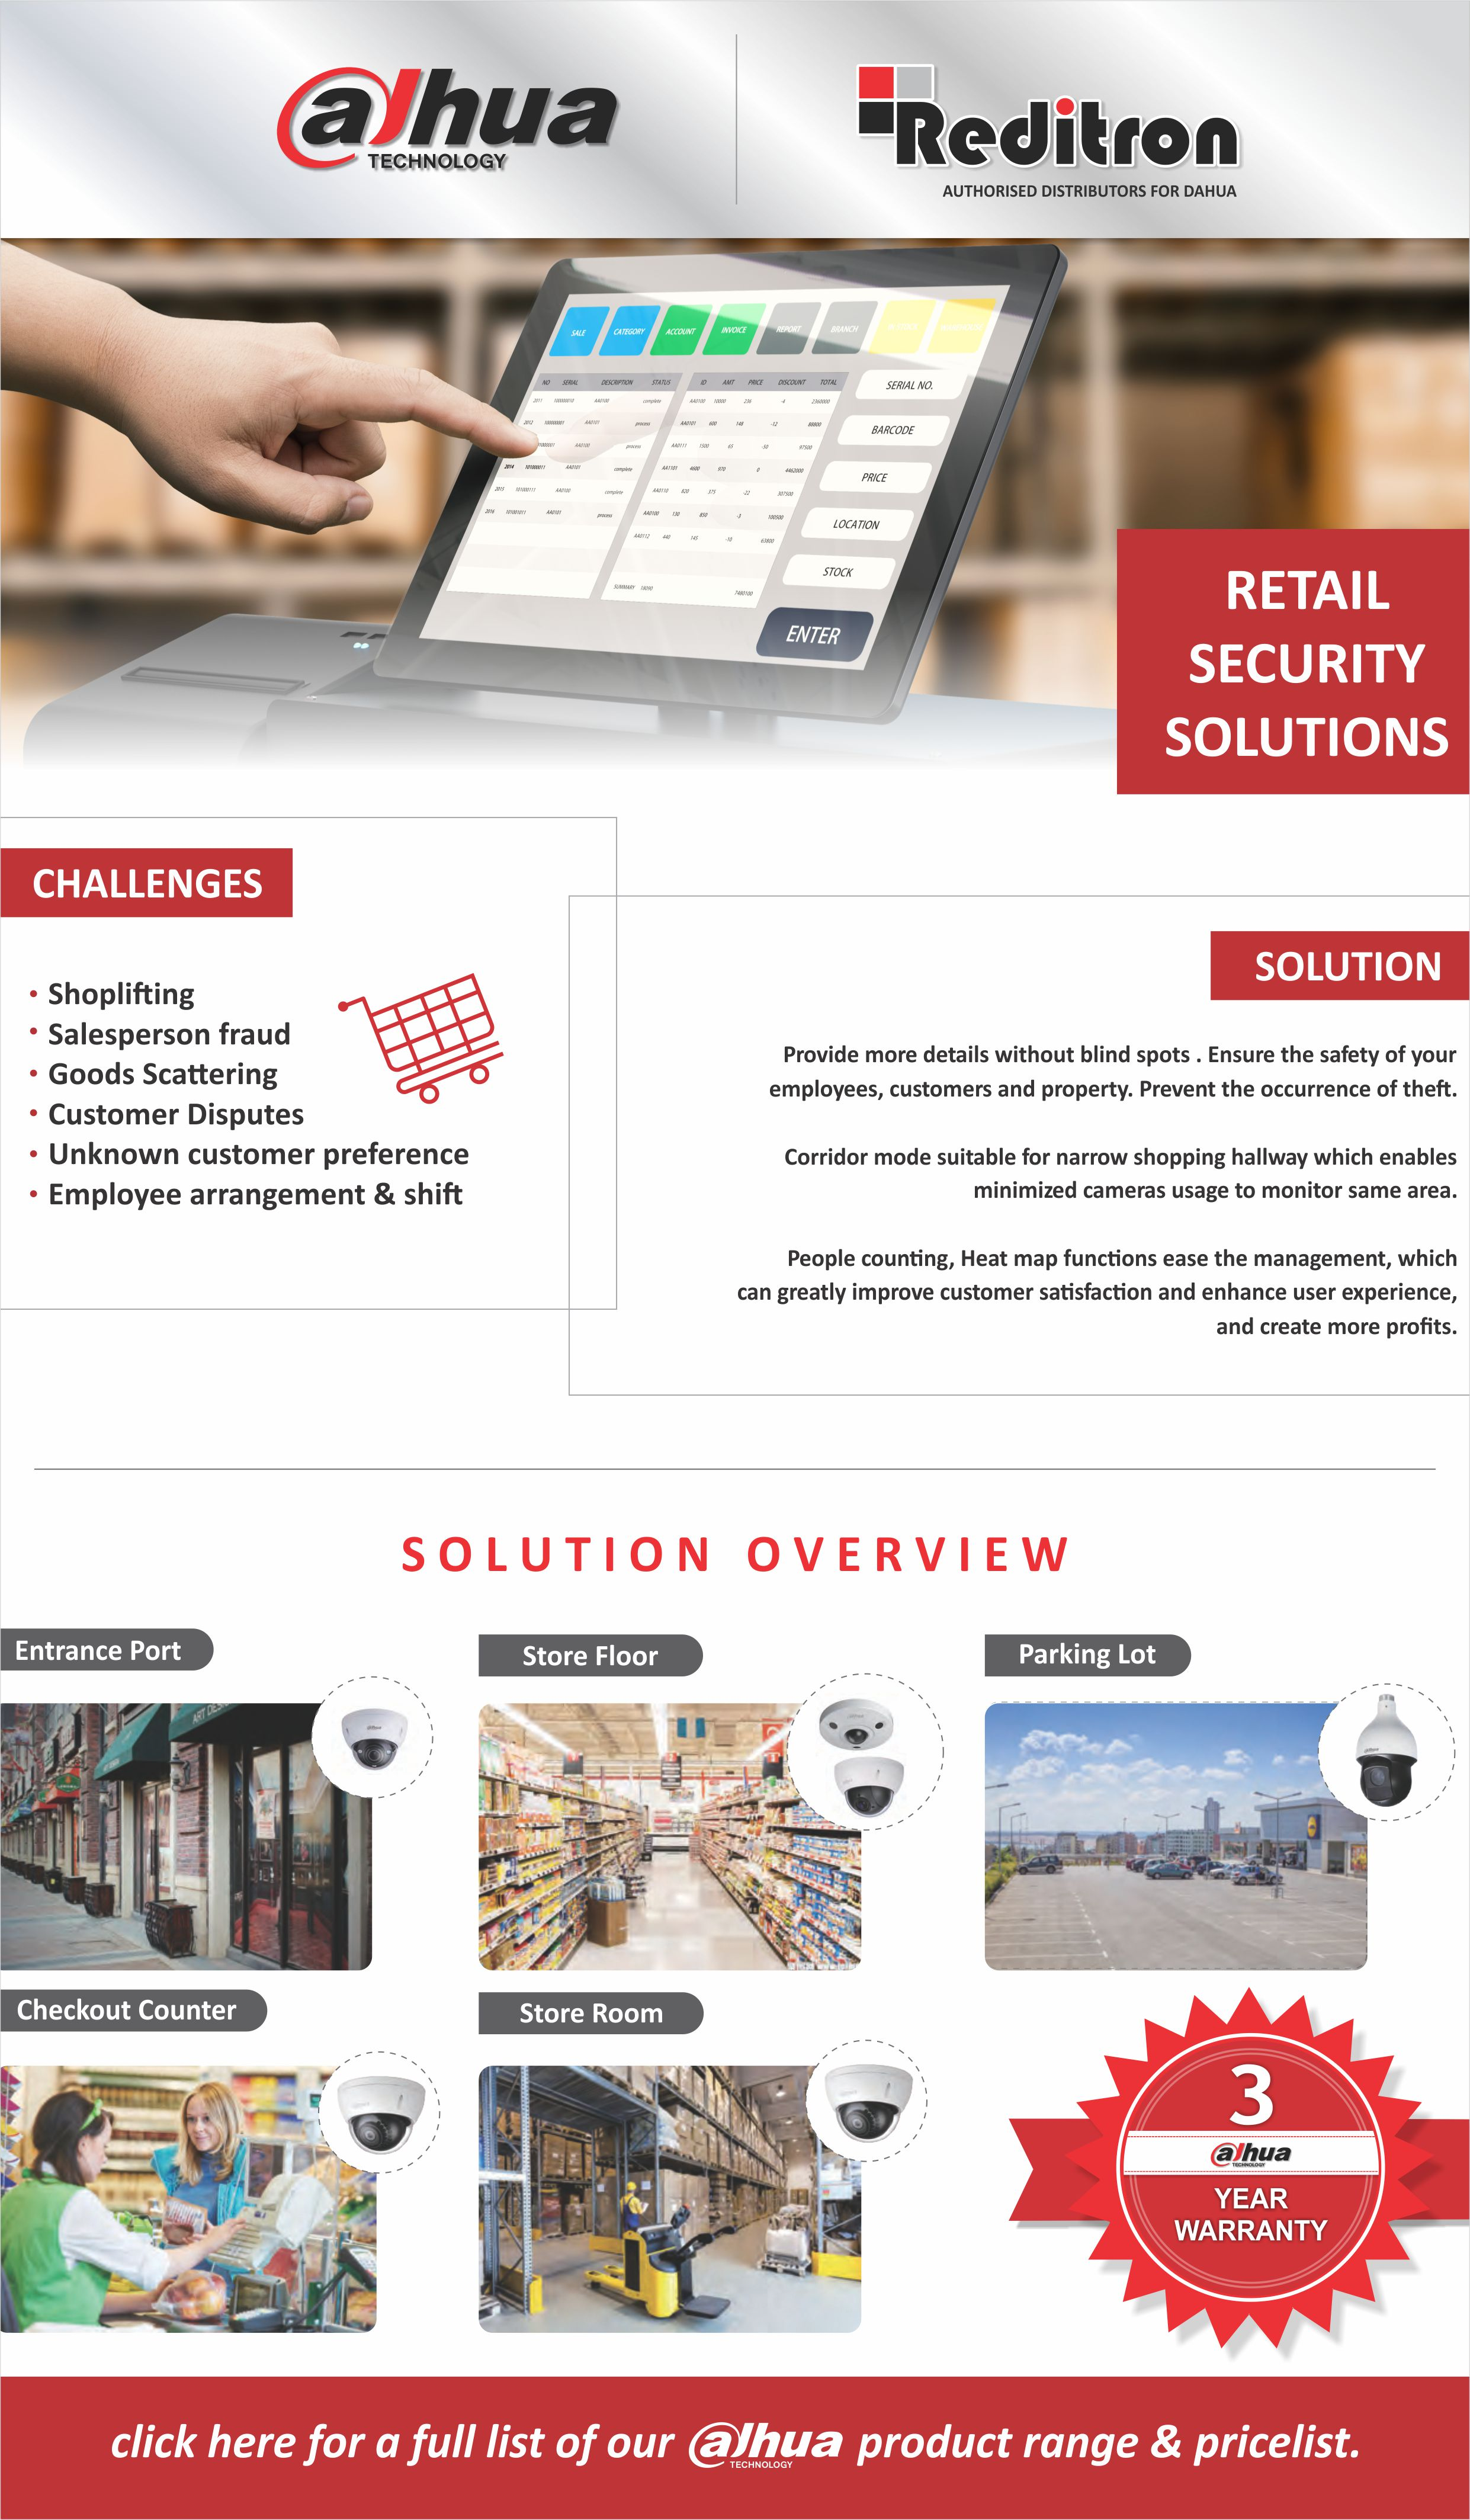 2017 July DahuaRetail Solutions Reditron Emailer